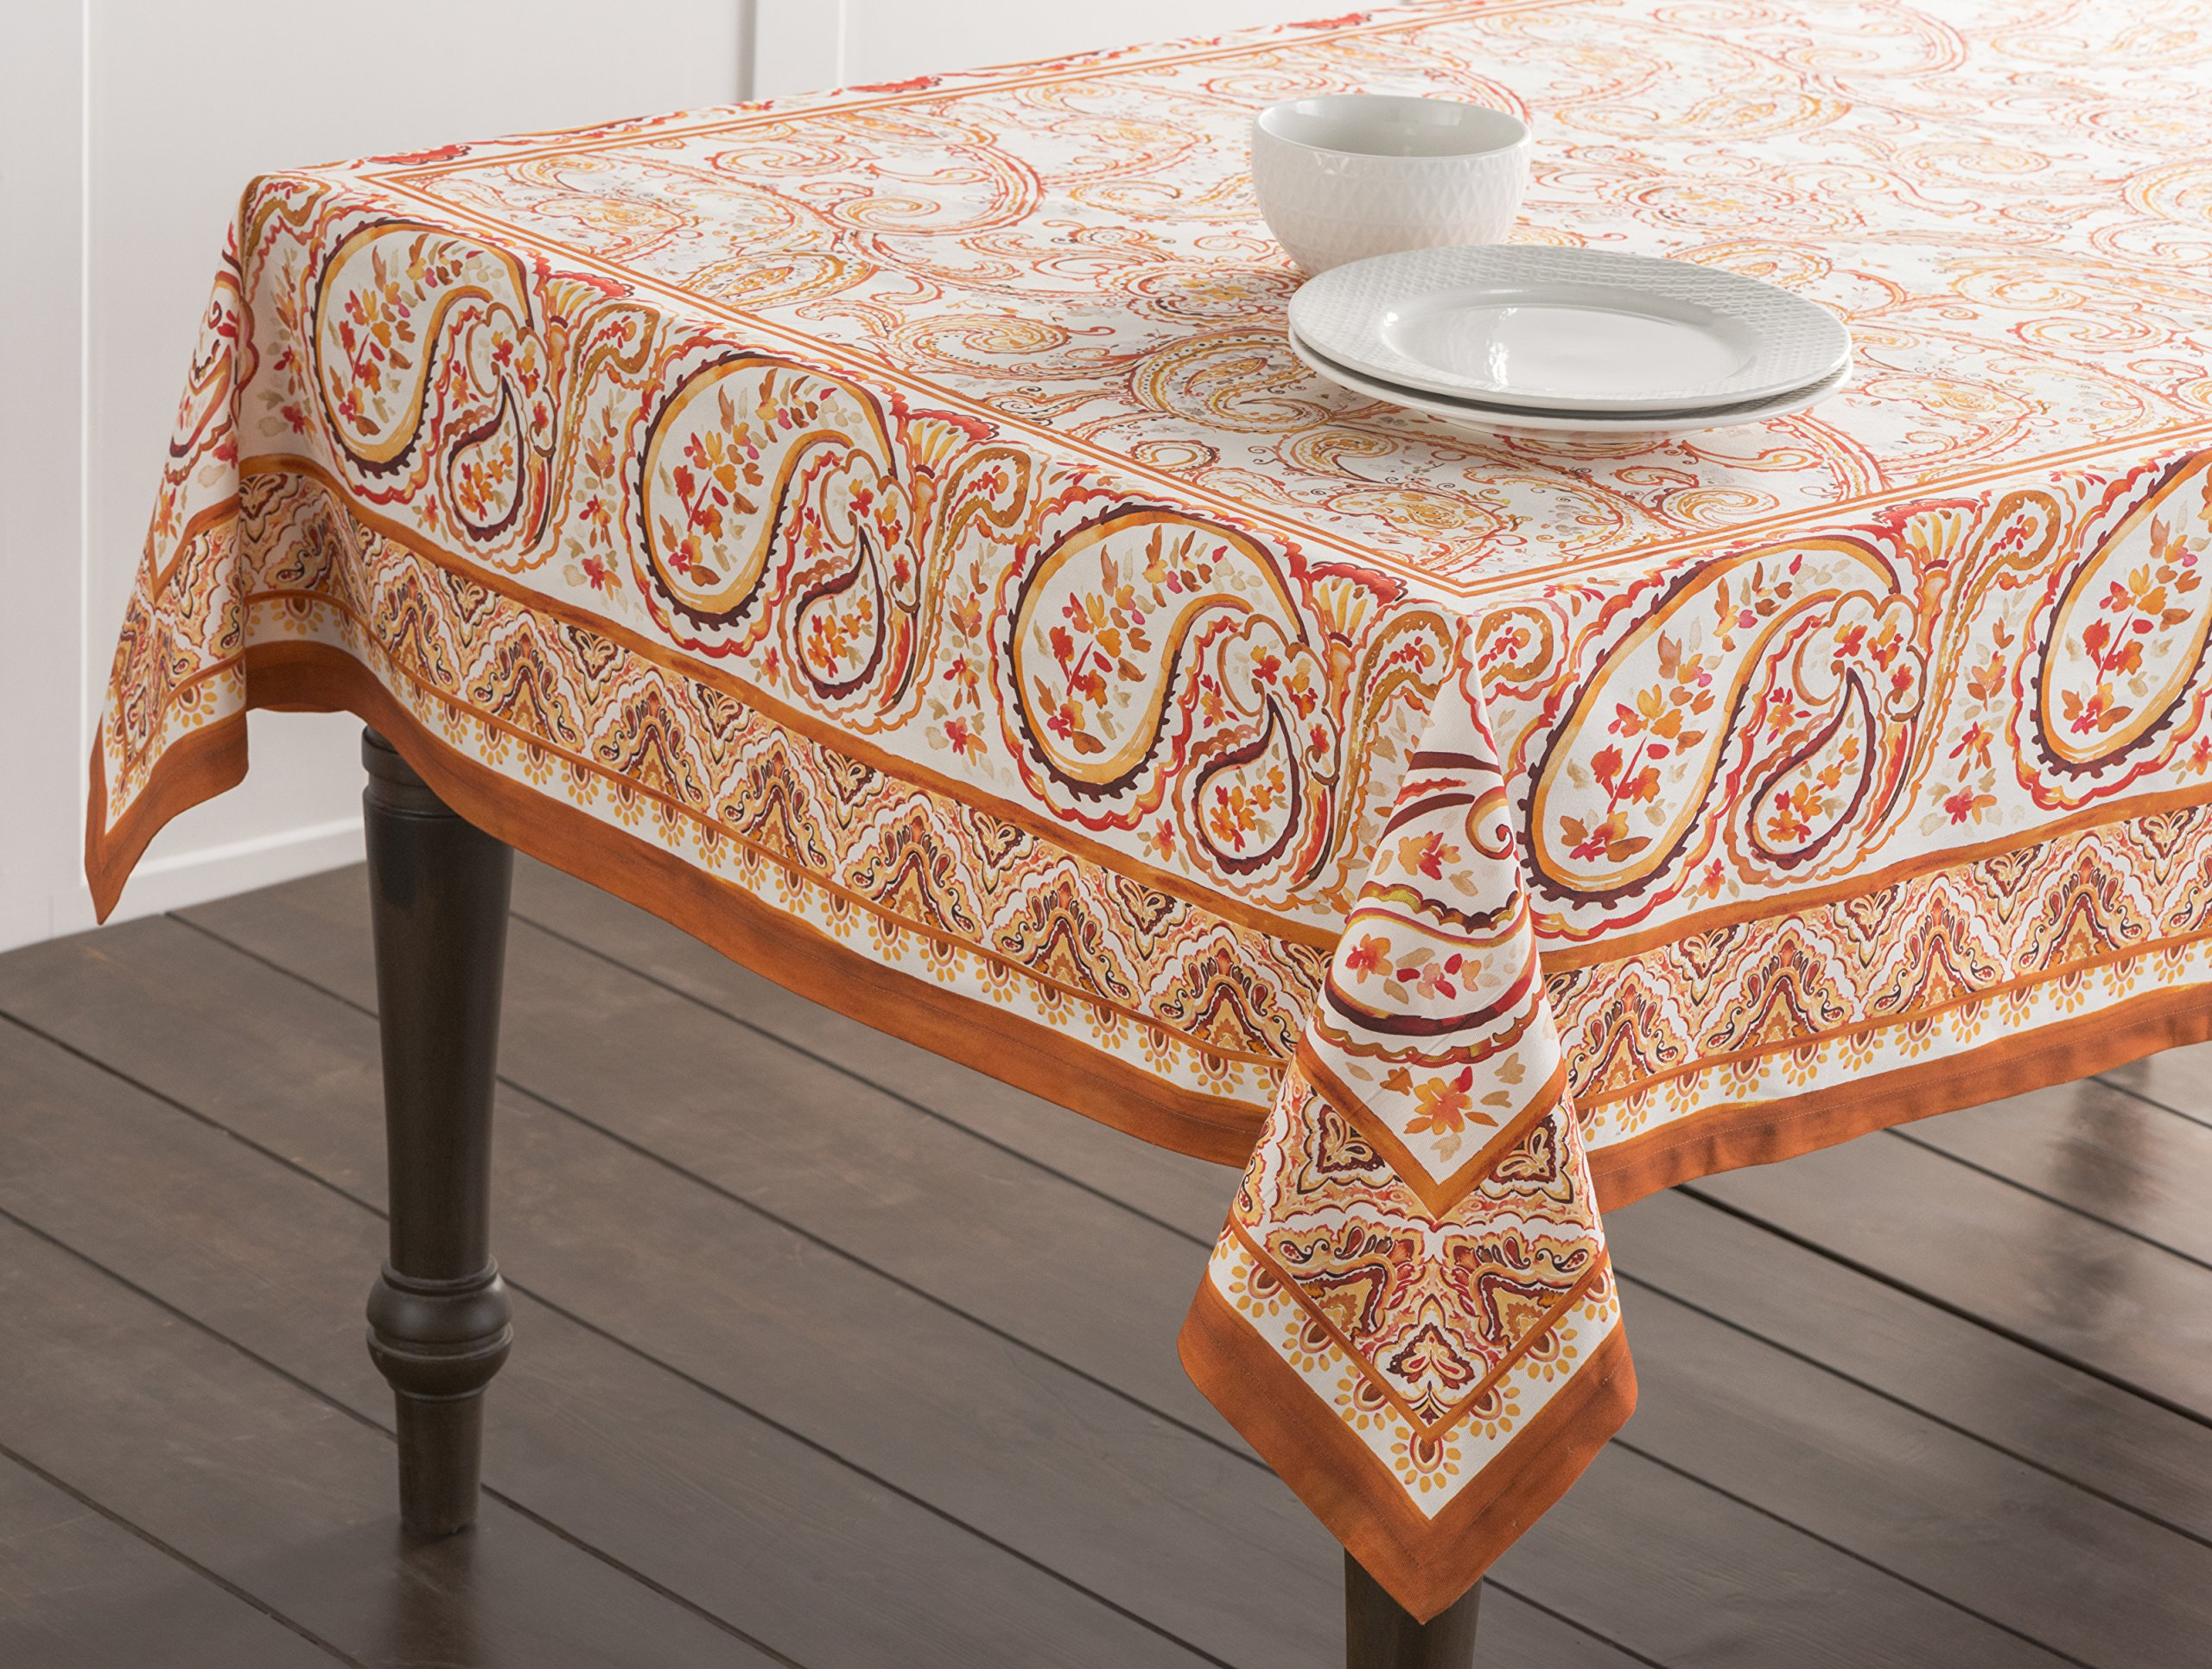 "Maison d' Hermine Palatial Paisley 100% Cotton Tablecloth 60 - Inch by 108 - Inch. - Designed in Europe CHRISTMAS CLEARANCE SALE - SPECIAL DISCOUNT PRICE. This Palatial Paisley tablecloth featured in the list of HOUSE BEAUTIFUL's ""16 Thanksgiving Tablecloths You'll Want To Keep Year Round"". 100% Cotton & Machine Washable. Package Includes : 1 Tablecloth - tablecloths, kitchen-dining-room-table-linens, kitchen-dining-room - 91vEQef5twL -"